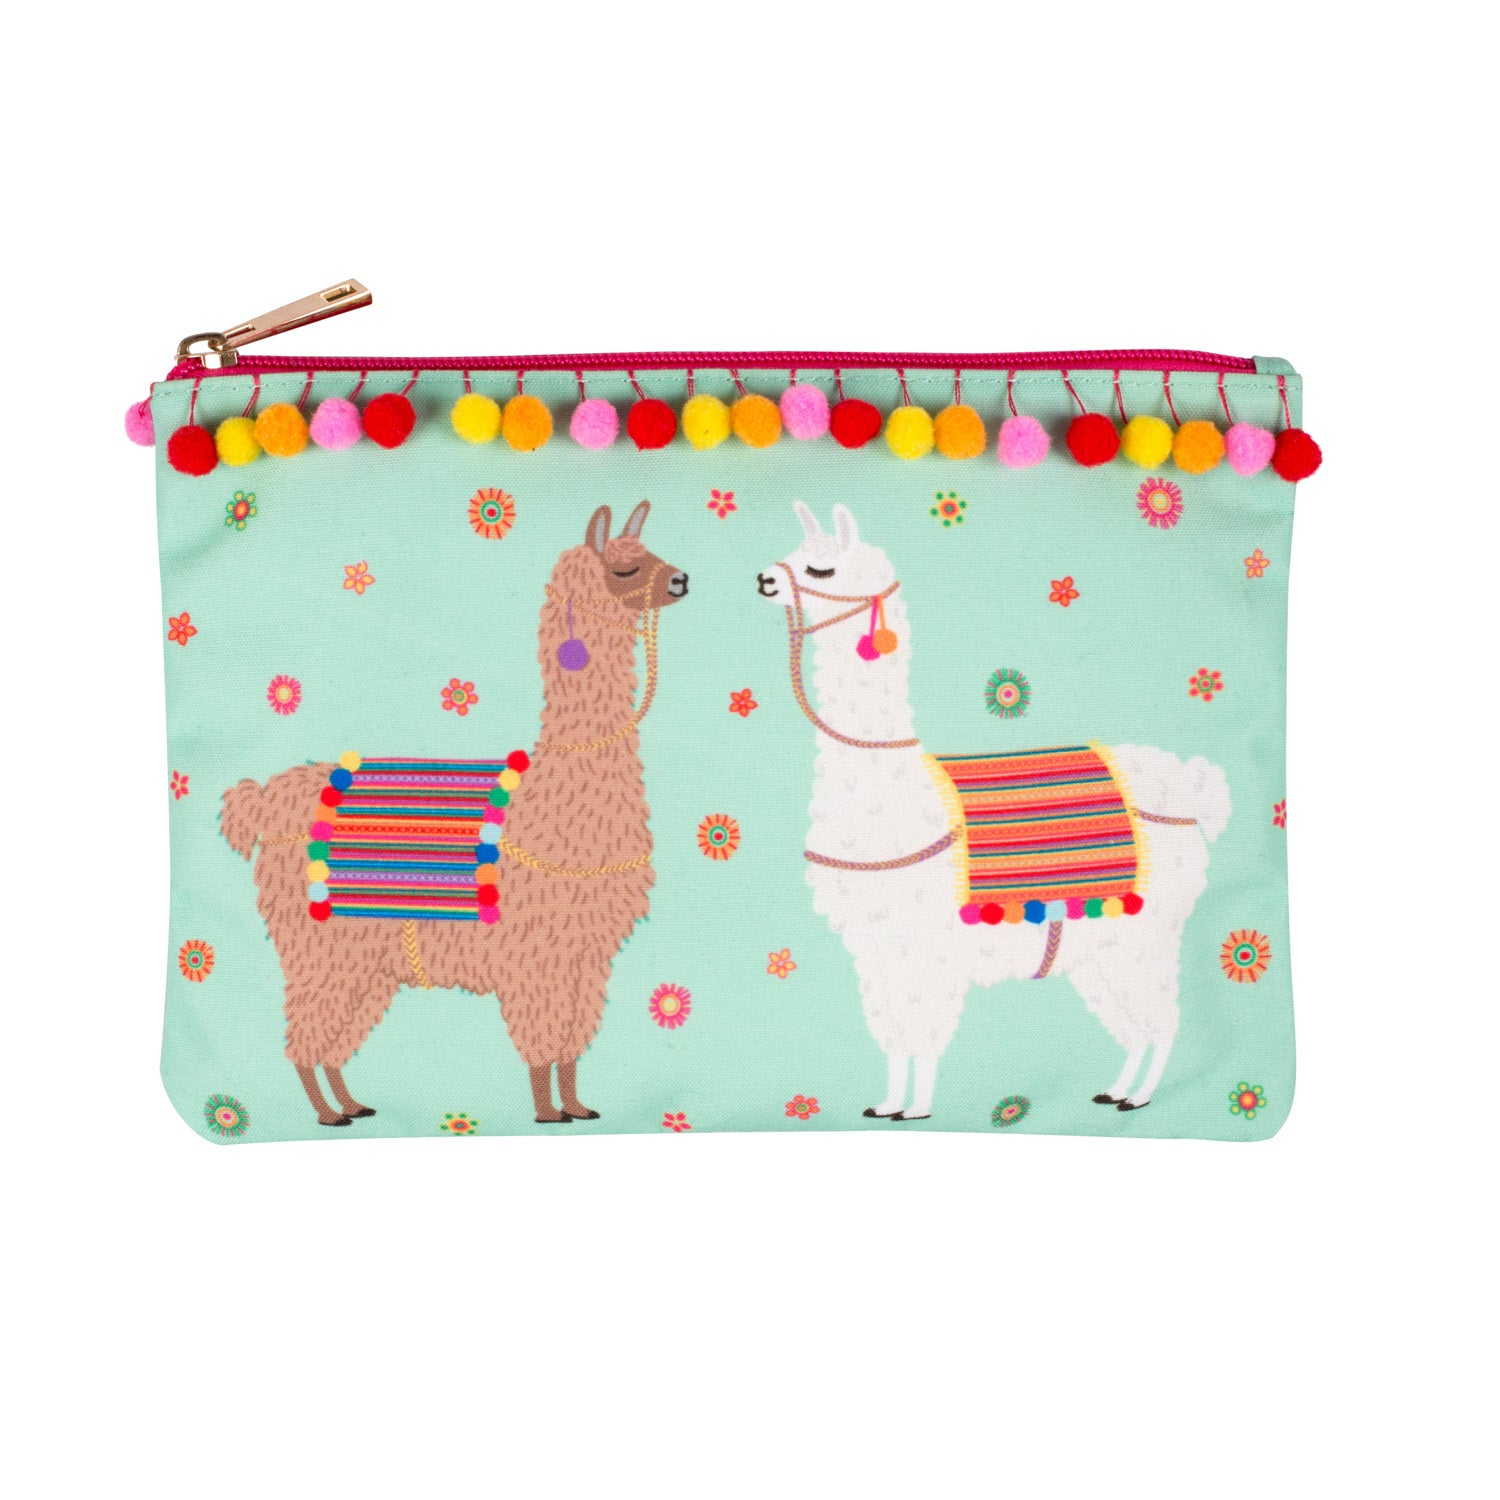 Lima Llama Pouch - MissieMay